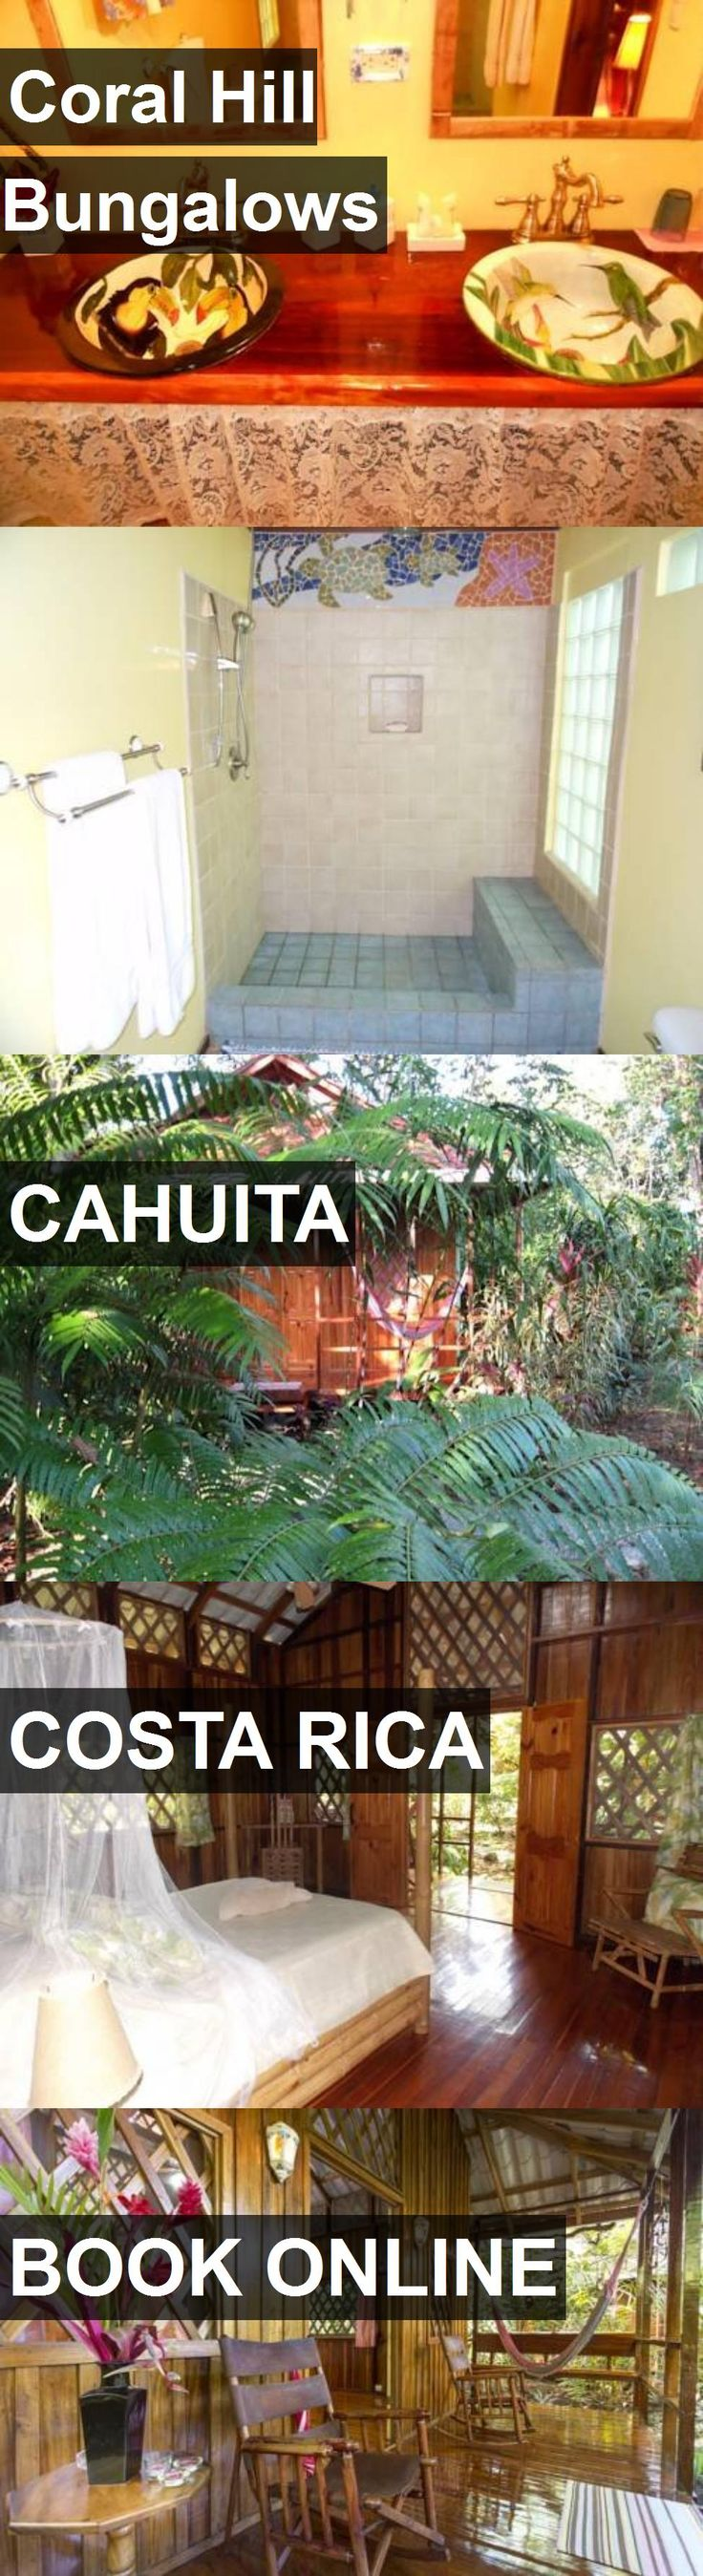 Hotel Coral Hill Bungalows in Cahuita, Costa Rica. For more information, photos, reviews and best prices please follow the link. #CostaRica #Cahuita #travel #vacation #hotel